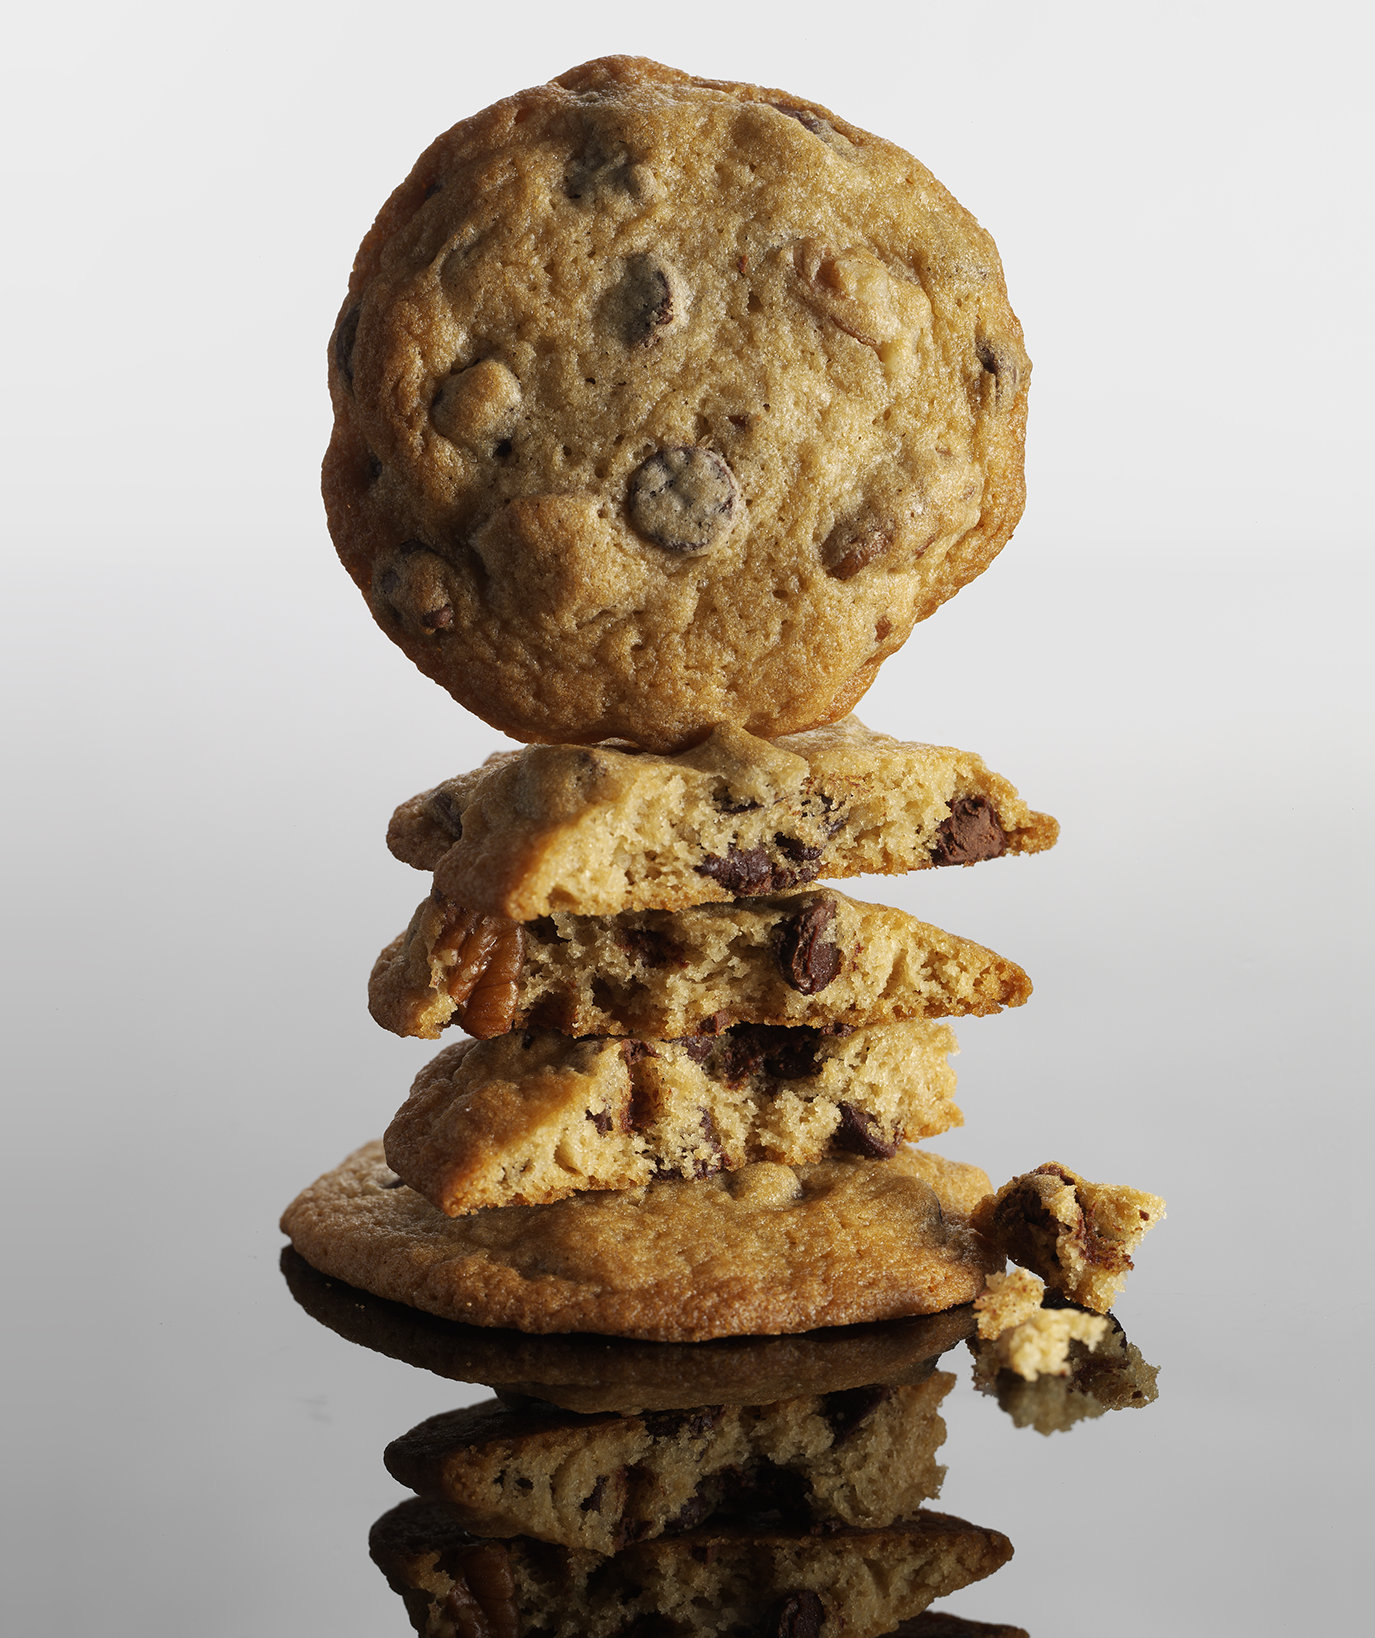 chocholate-chip-stack_0